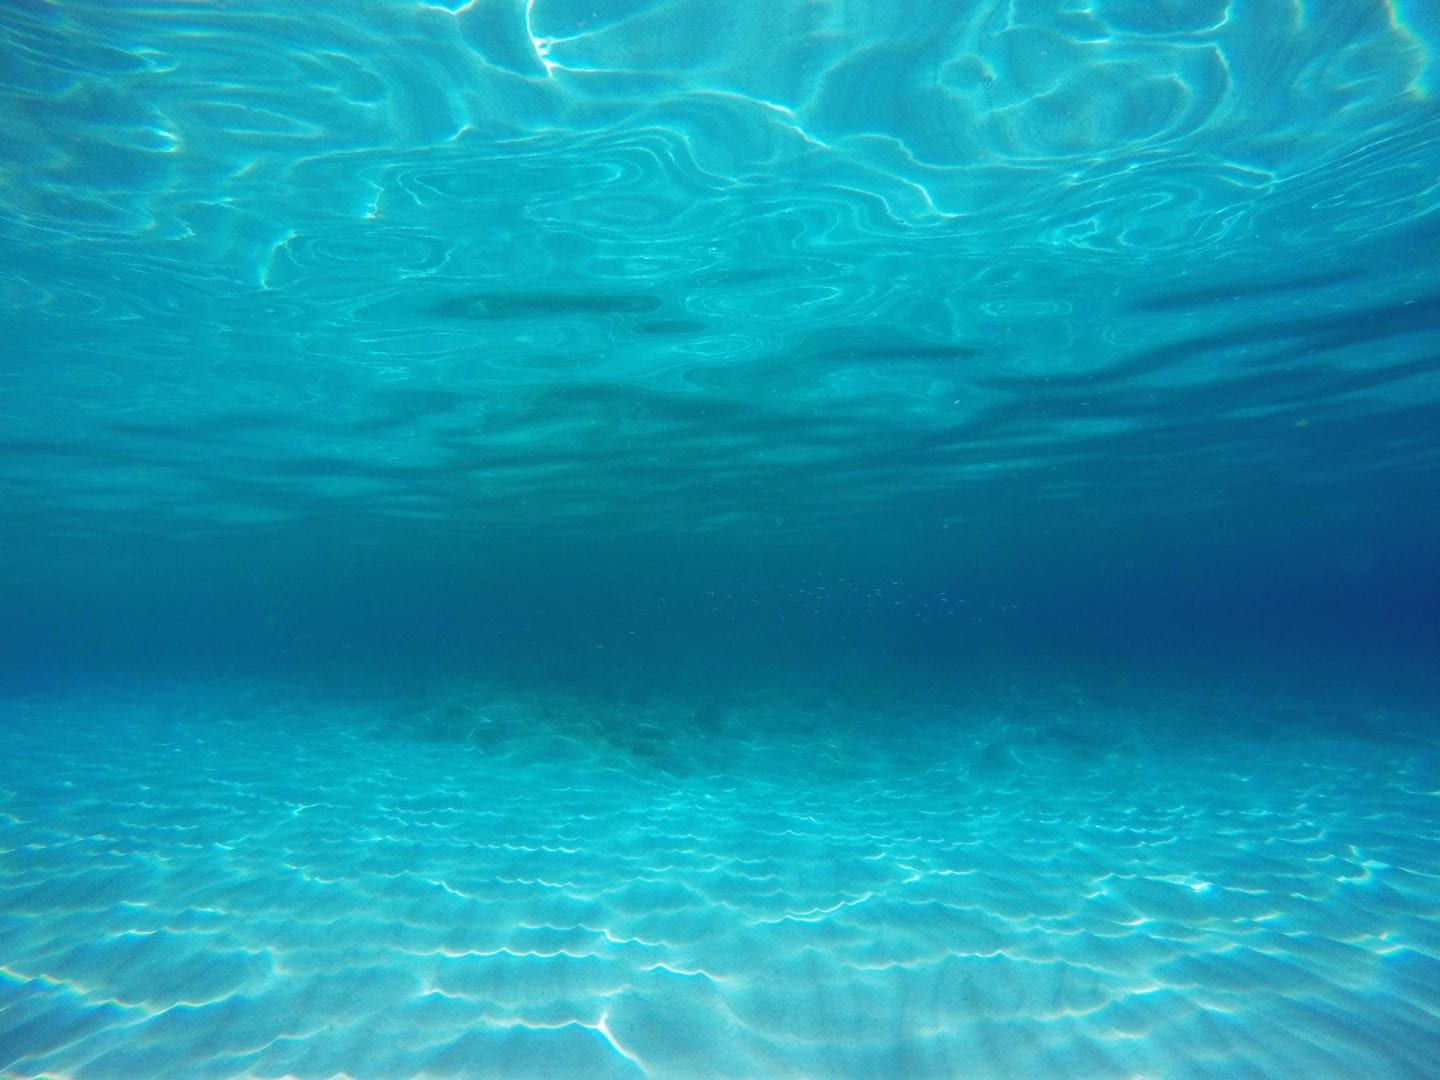 Tranquil underwater background